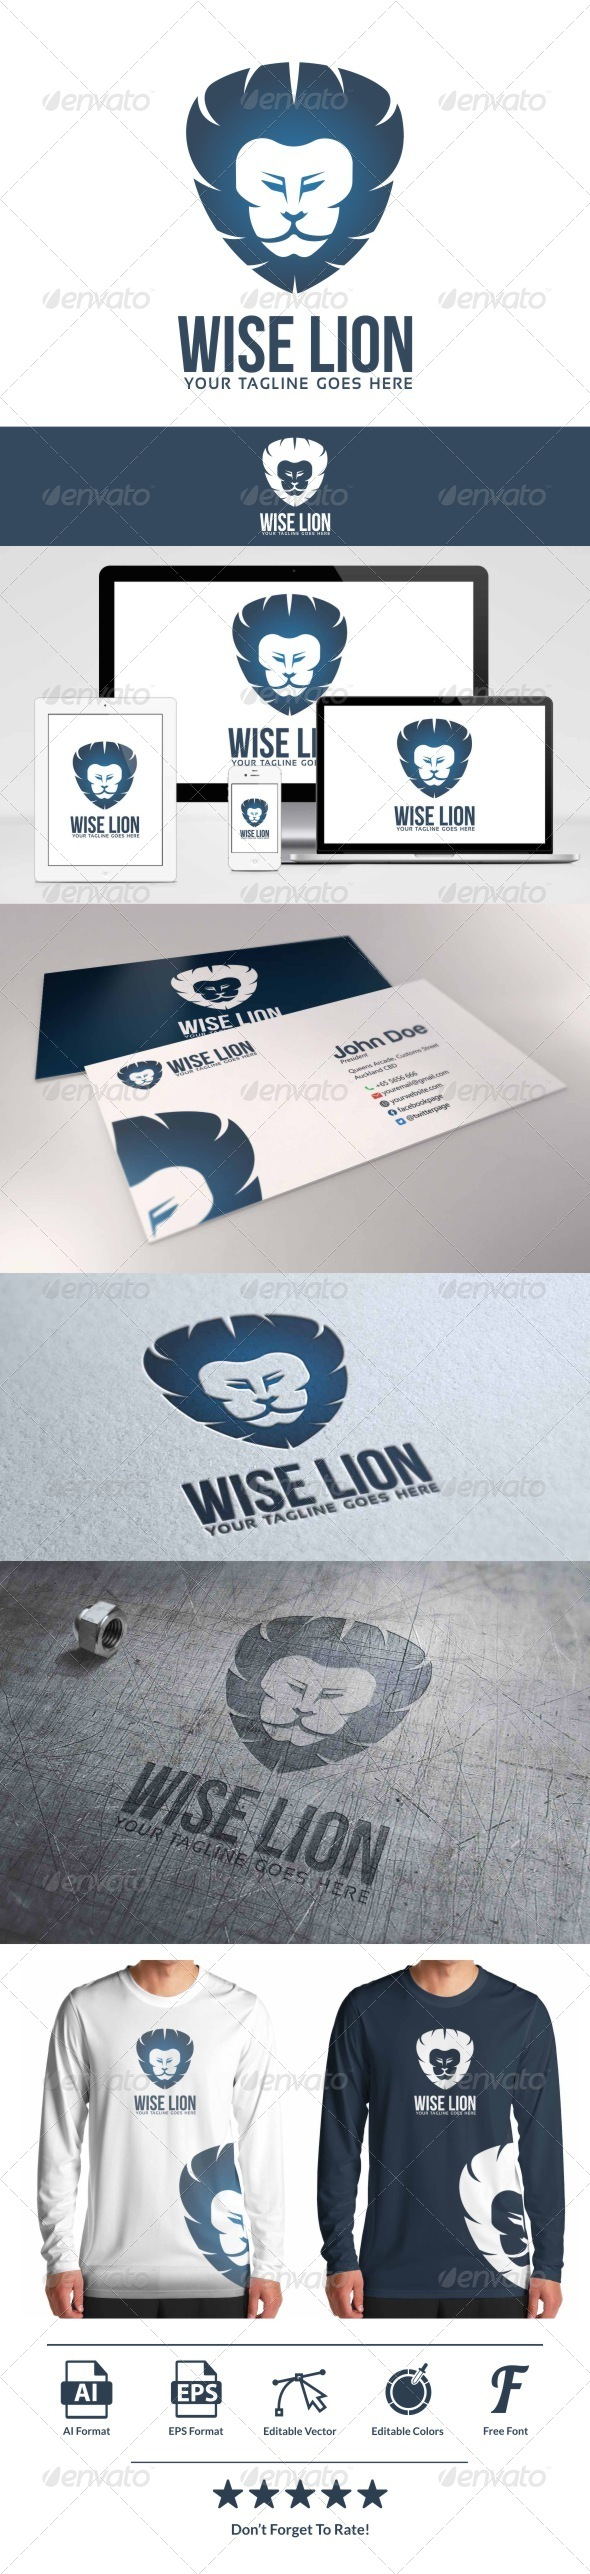 Wise Lion Logo